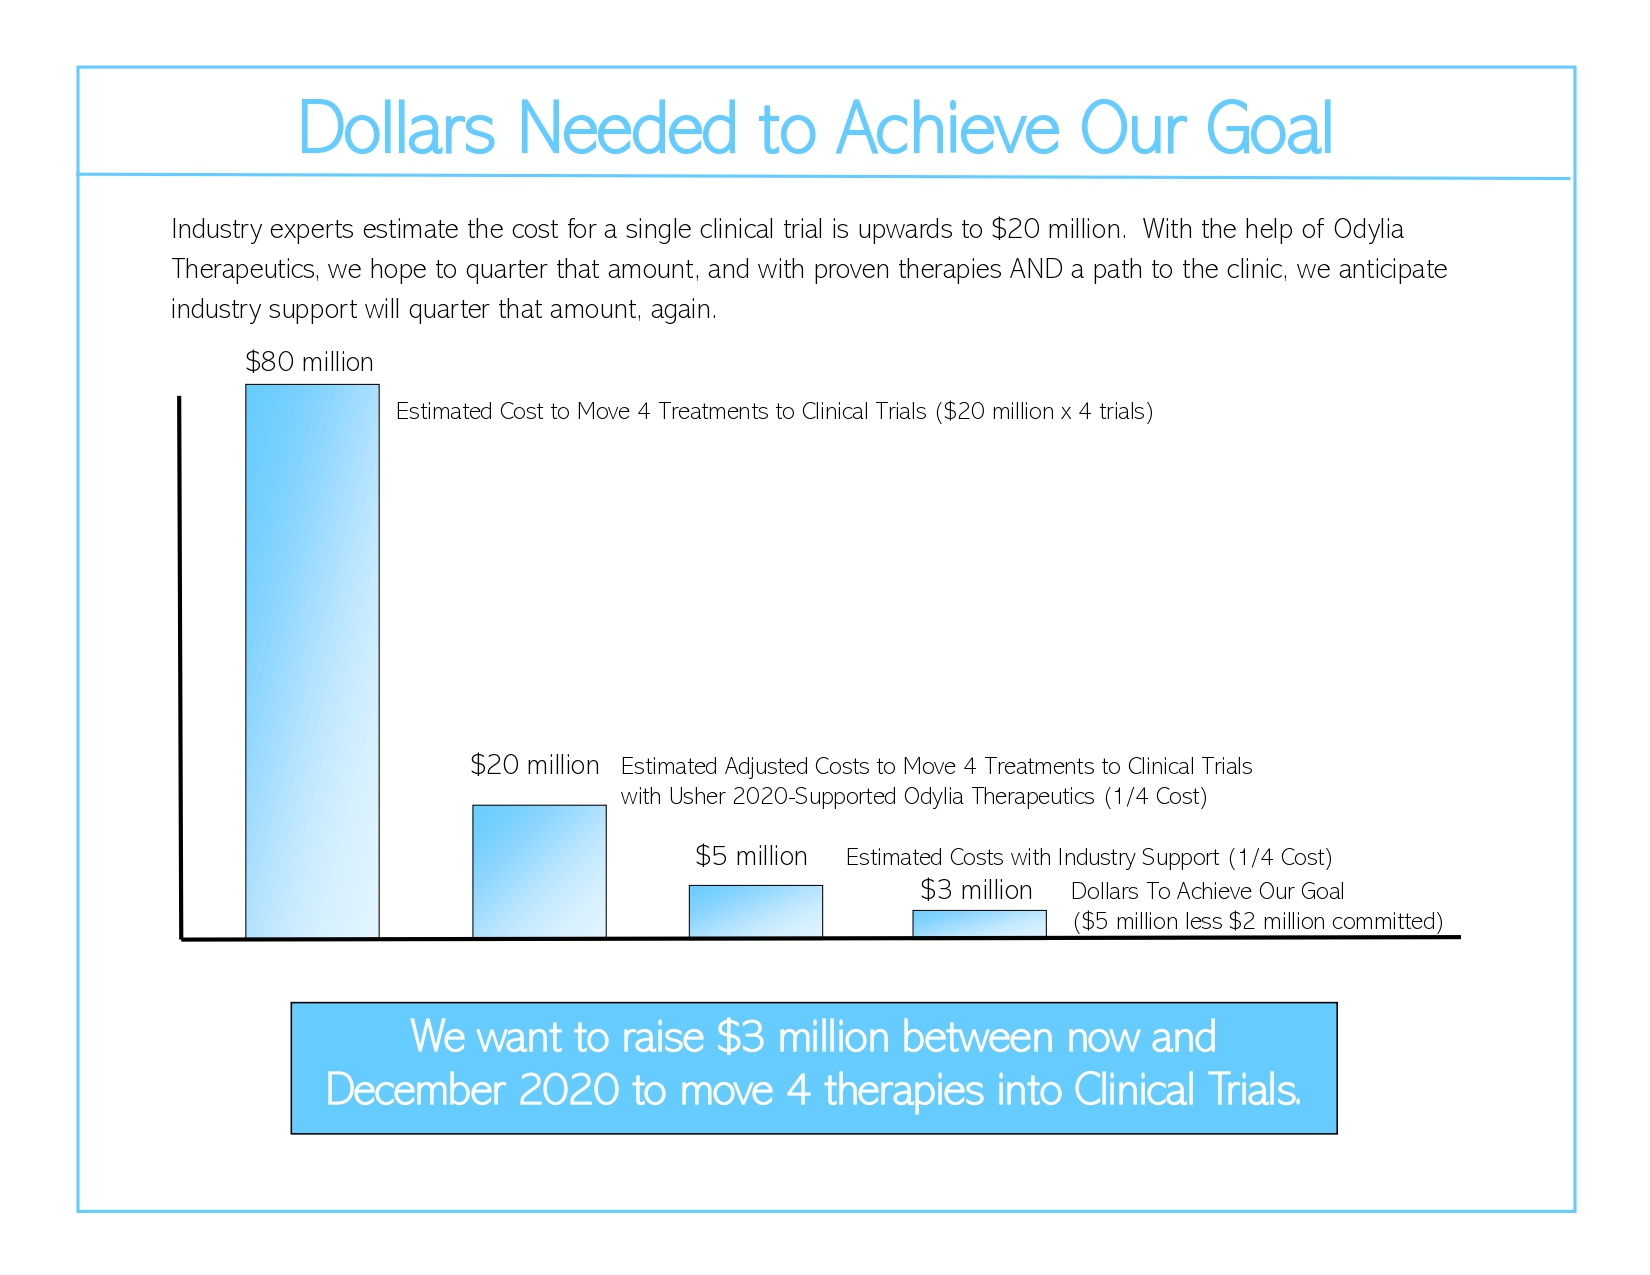 Dollars Needed to Achieve Our Goal